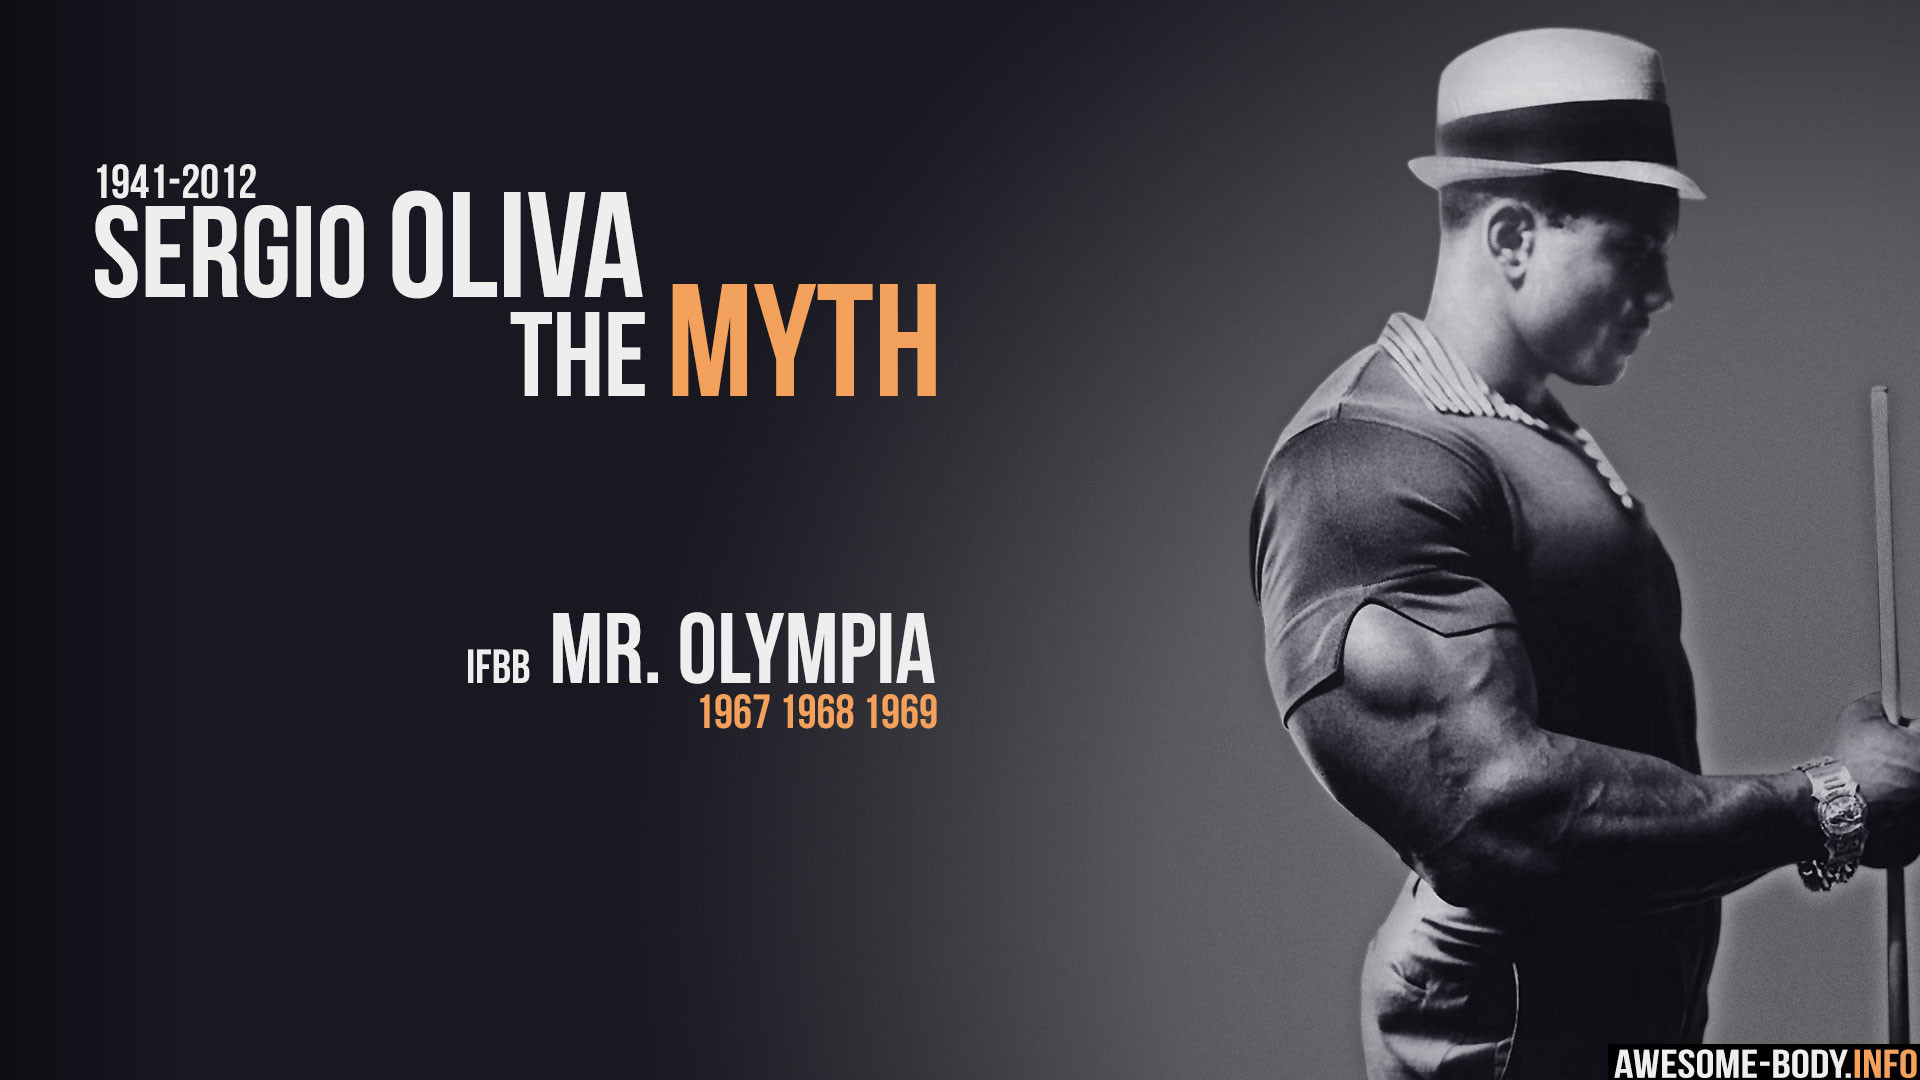 1920x1080  Sergio Oliva poster | The Myth | Bodybuilding hd wallpaper